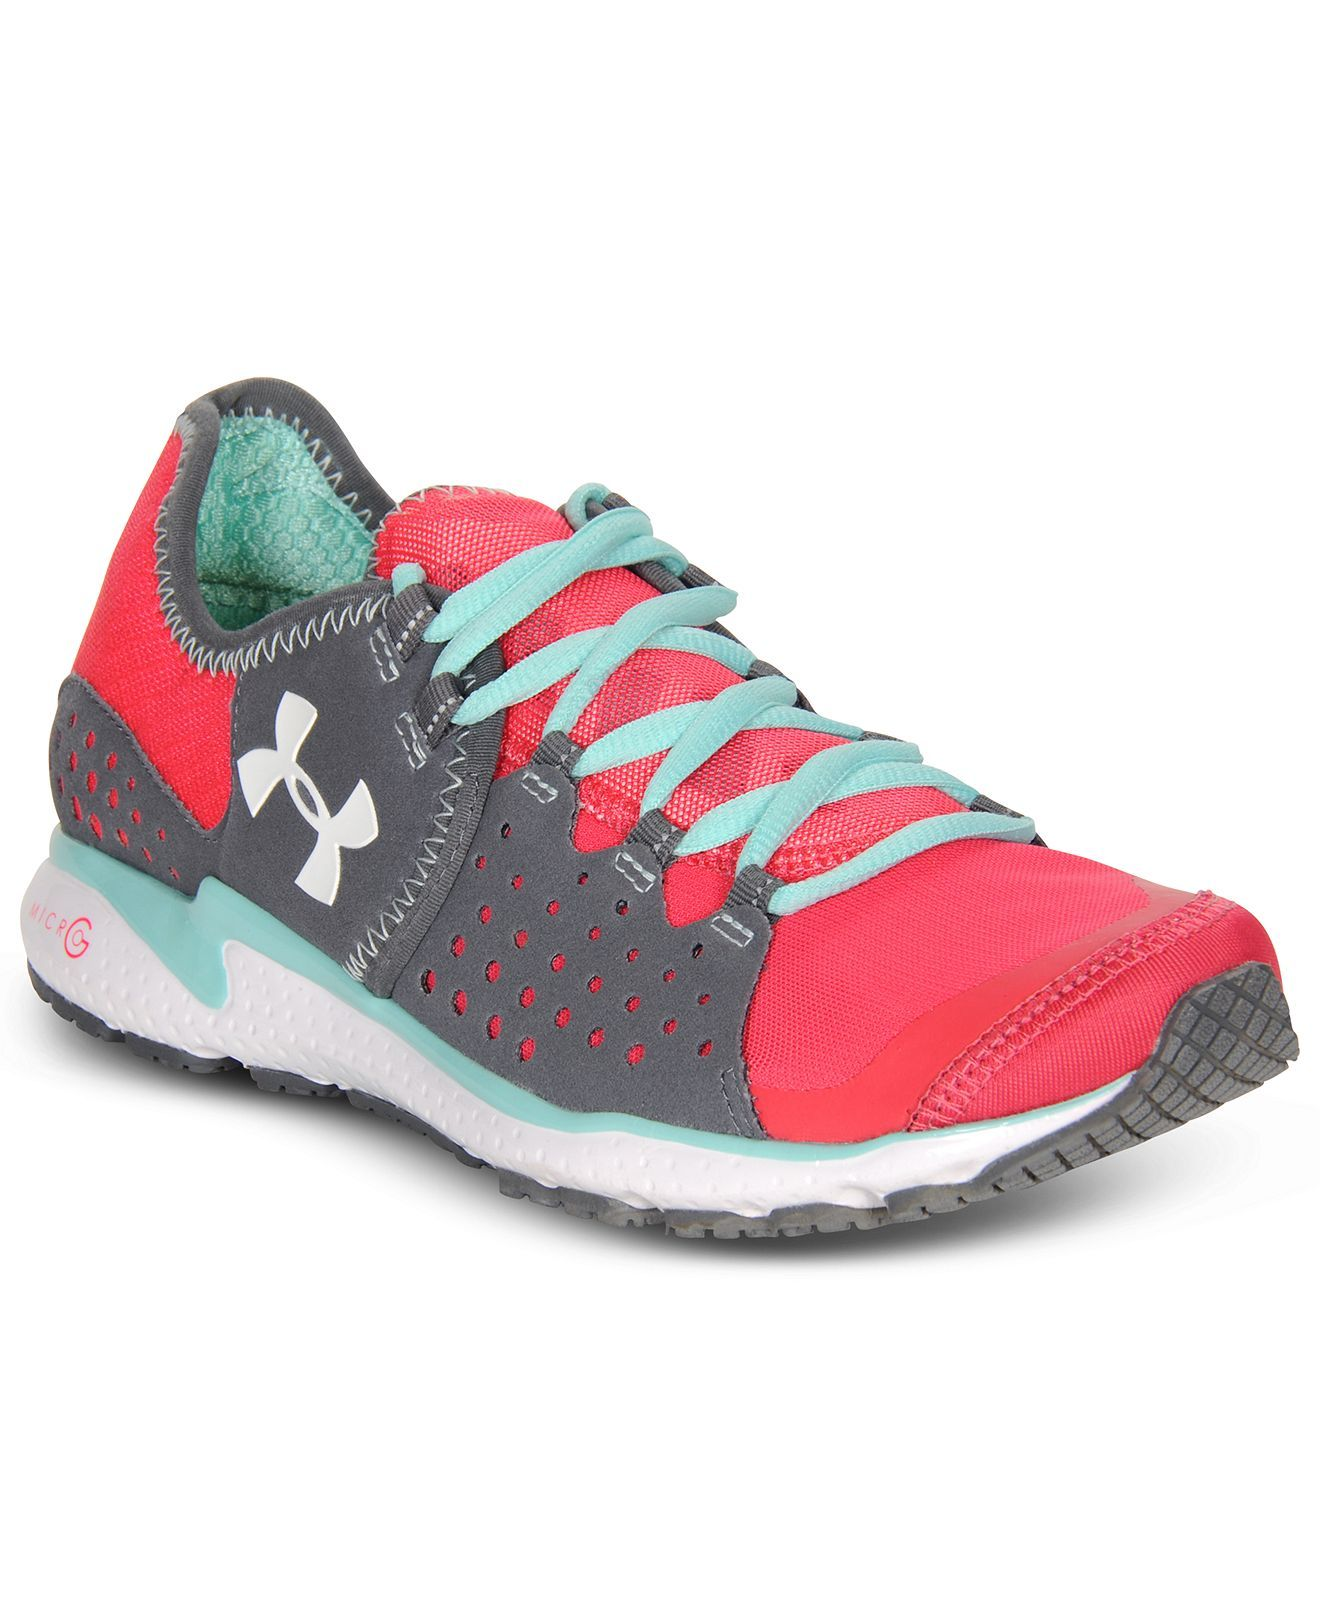 Under Armour Womens Shoes Micro G Mantis Running Sneakers